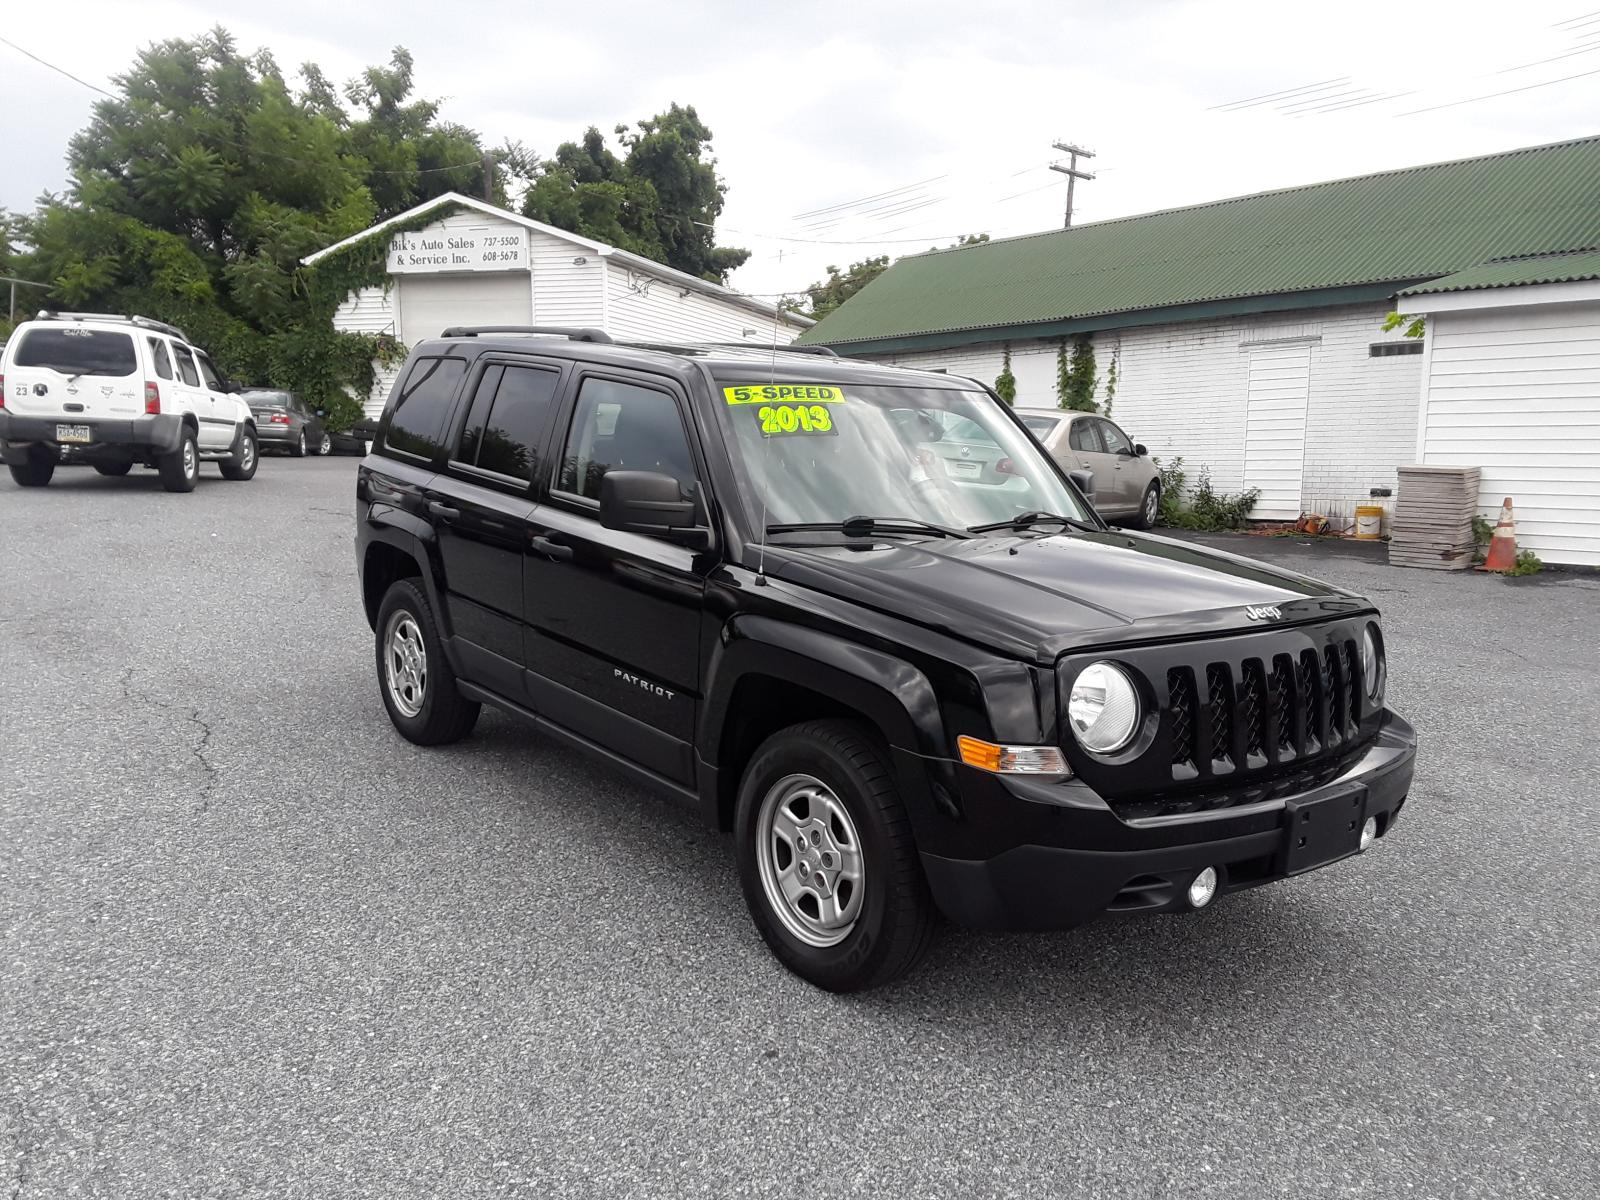 2013 Jeep Patriot Sp 2.0L Left View